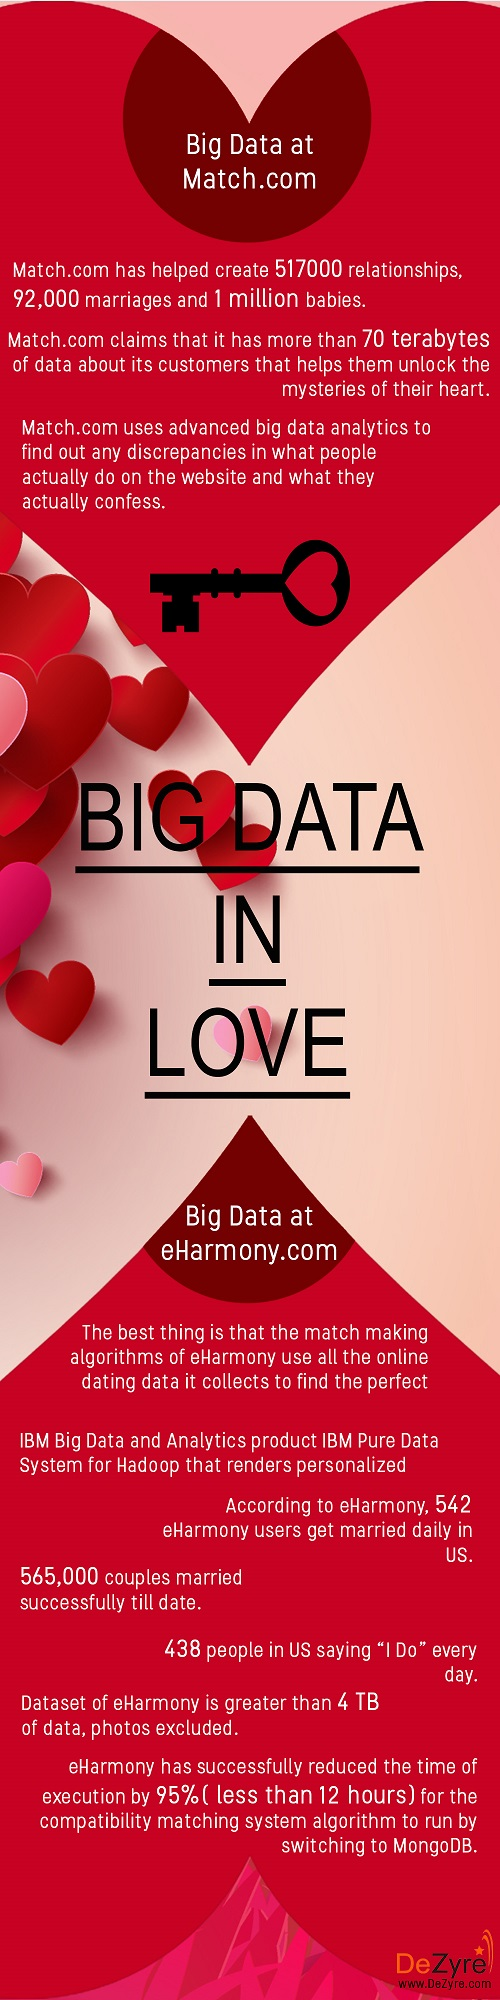 Big Data in Dating